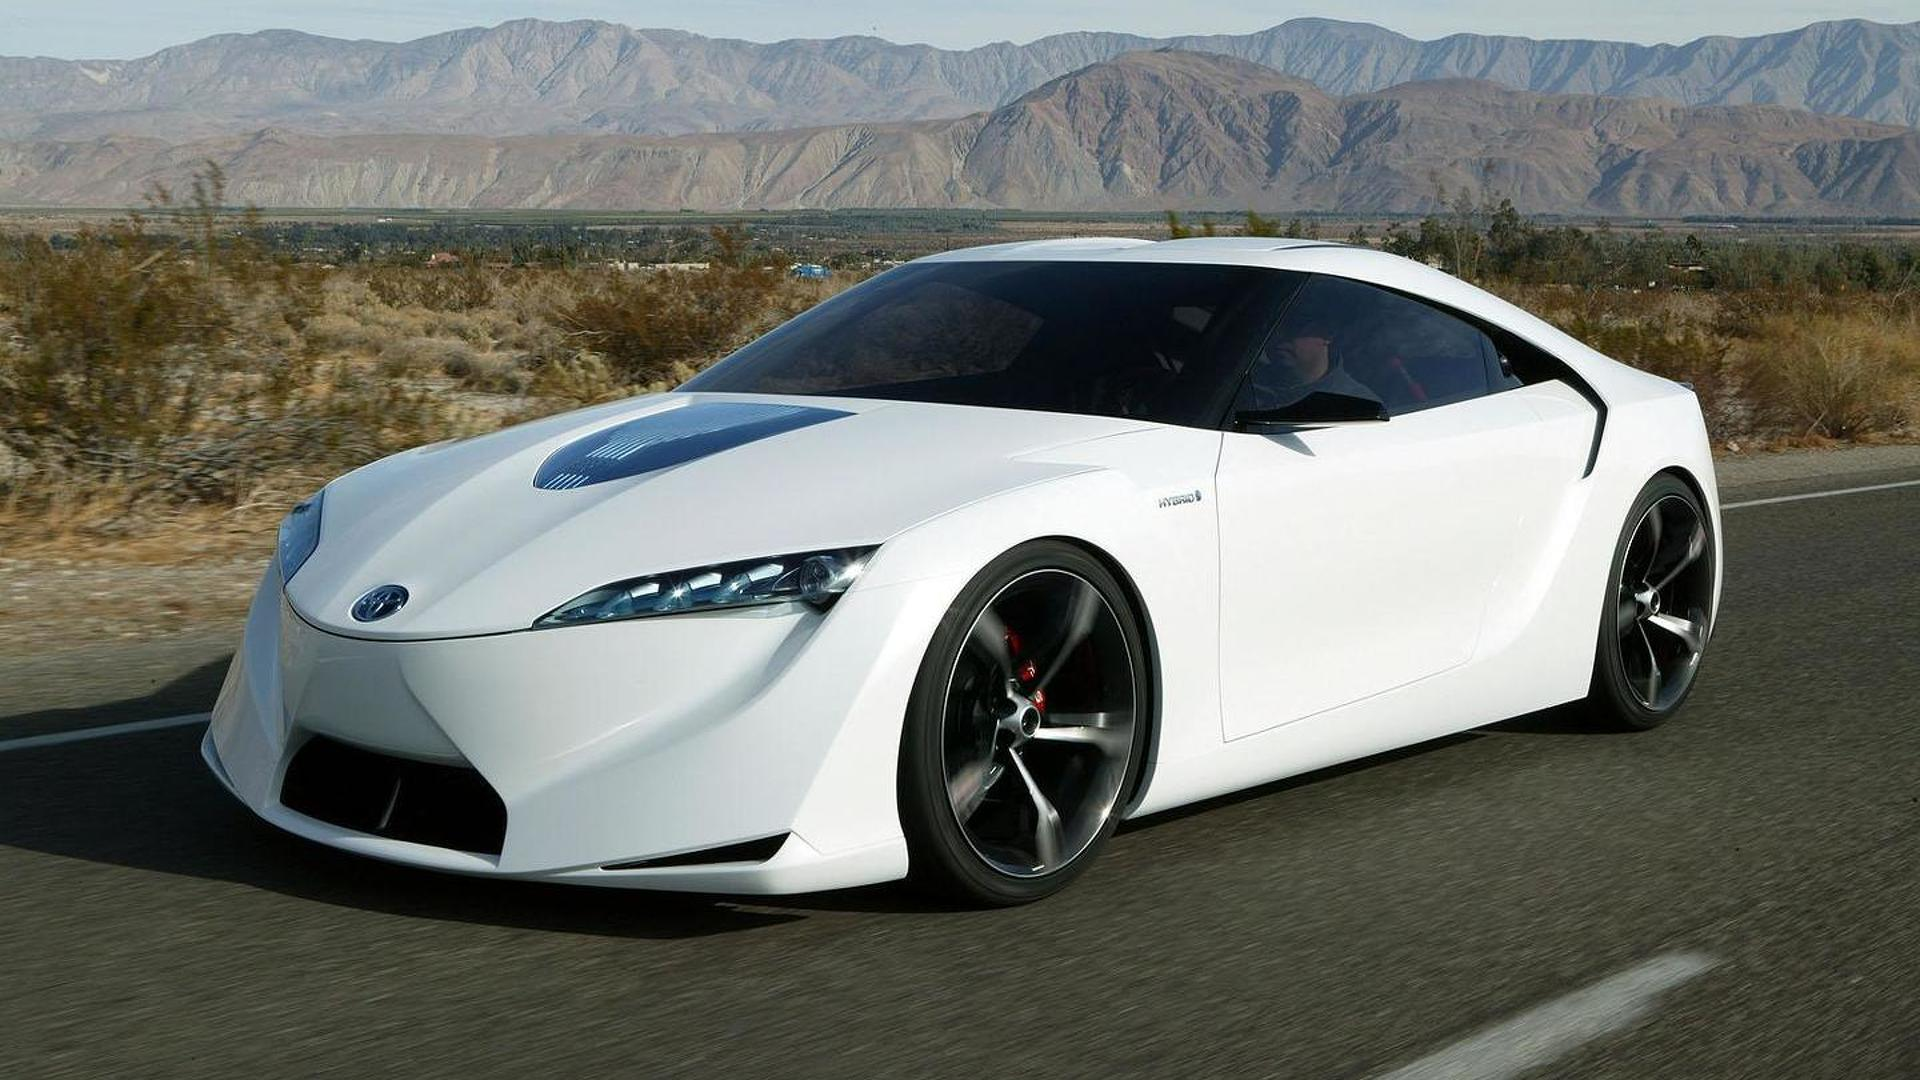 2015 Toyota Supra To Be A Hybrid With 400 Hp Report